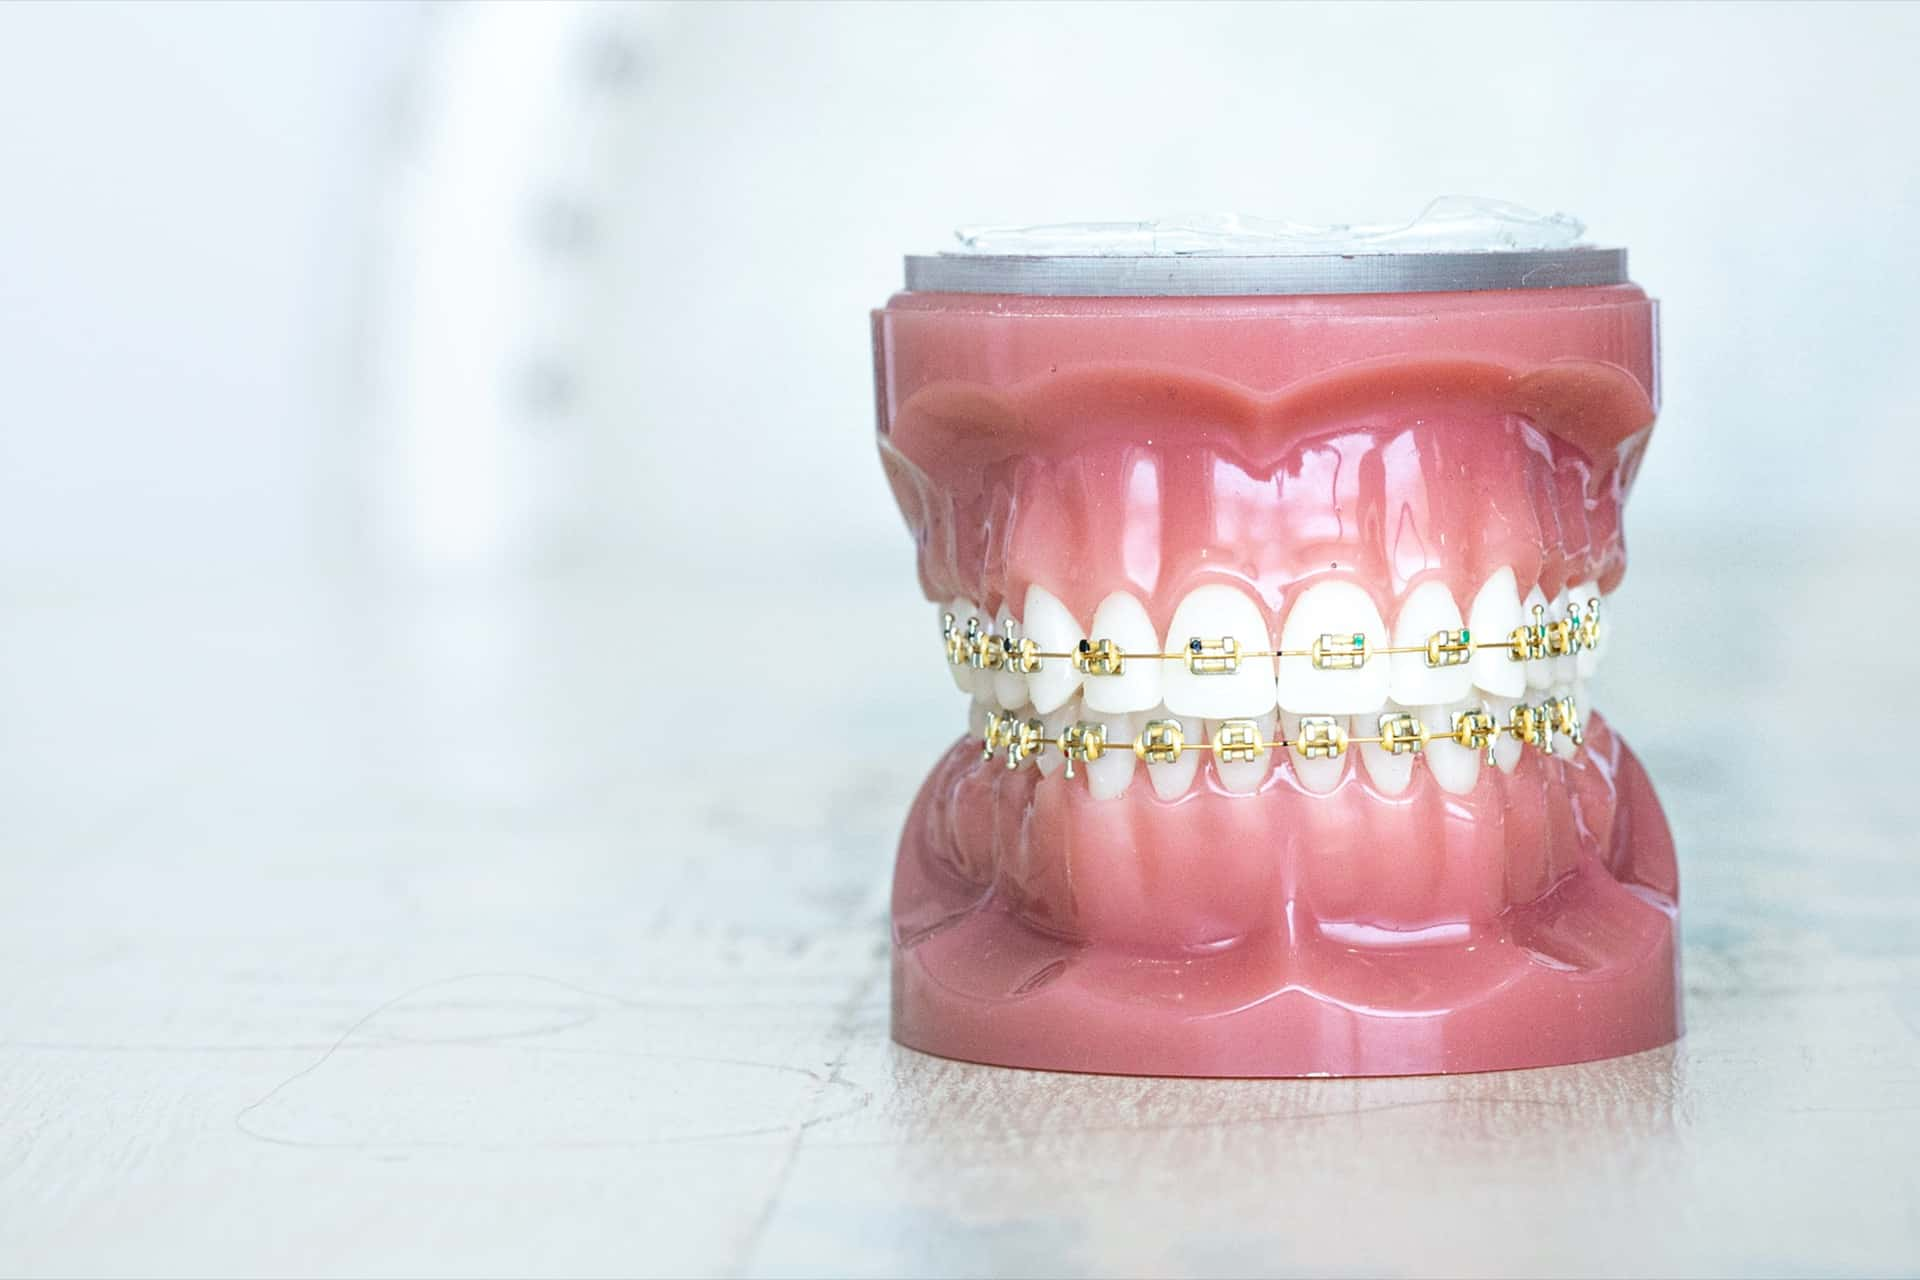 Tooth Models Gold Orthodontics 76 - Customized Braces & Orthodontic Treatment For Adults and Children